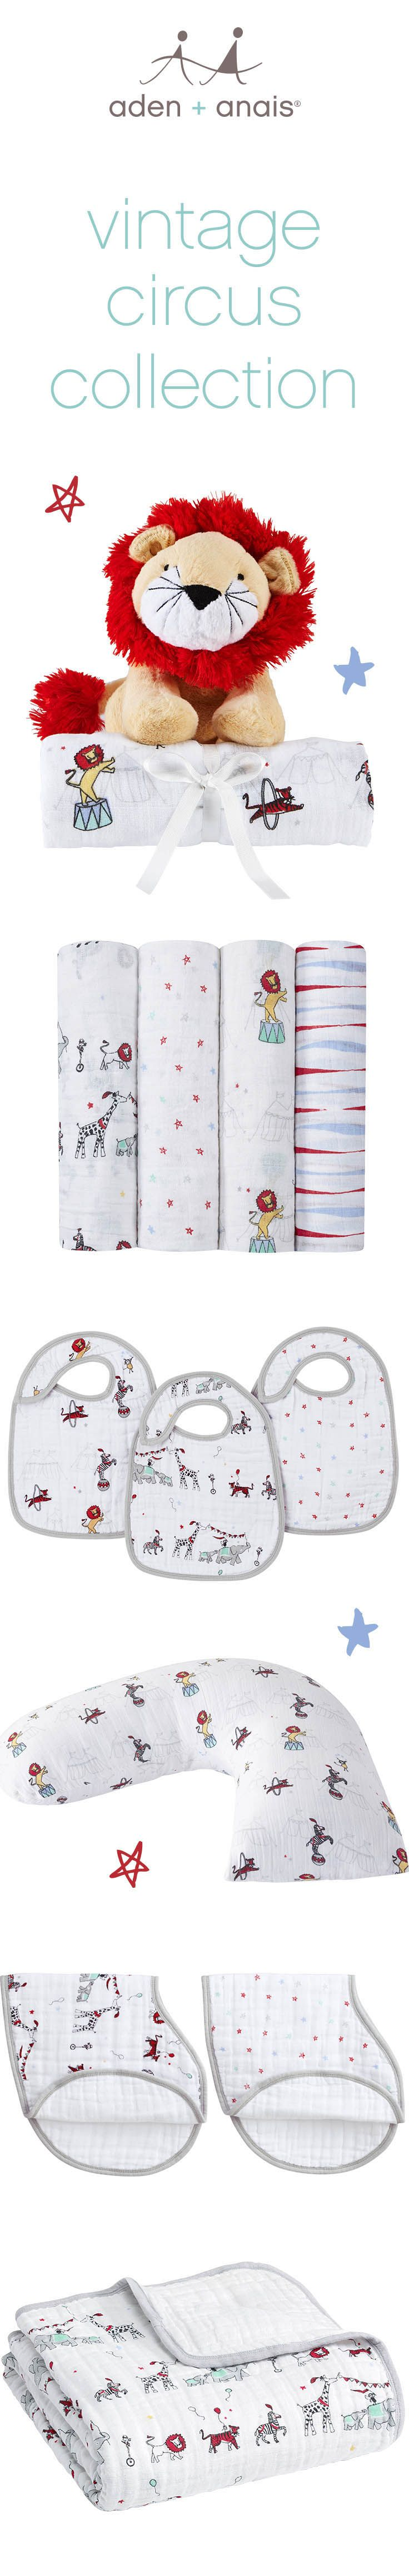 Every day's a celebration with our whimsical and classic vintage circus collection. From parading lions and elephants to twinkling stars and stripes, these cotton muslin essentials are the perfect addition to any baby nursery.